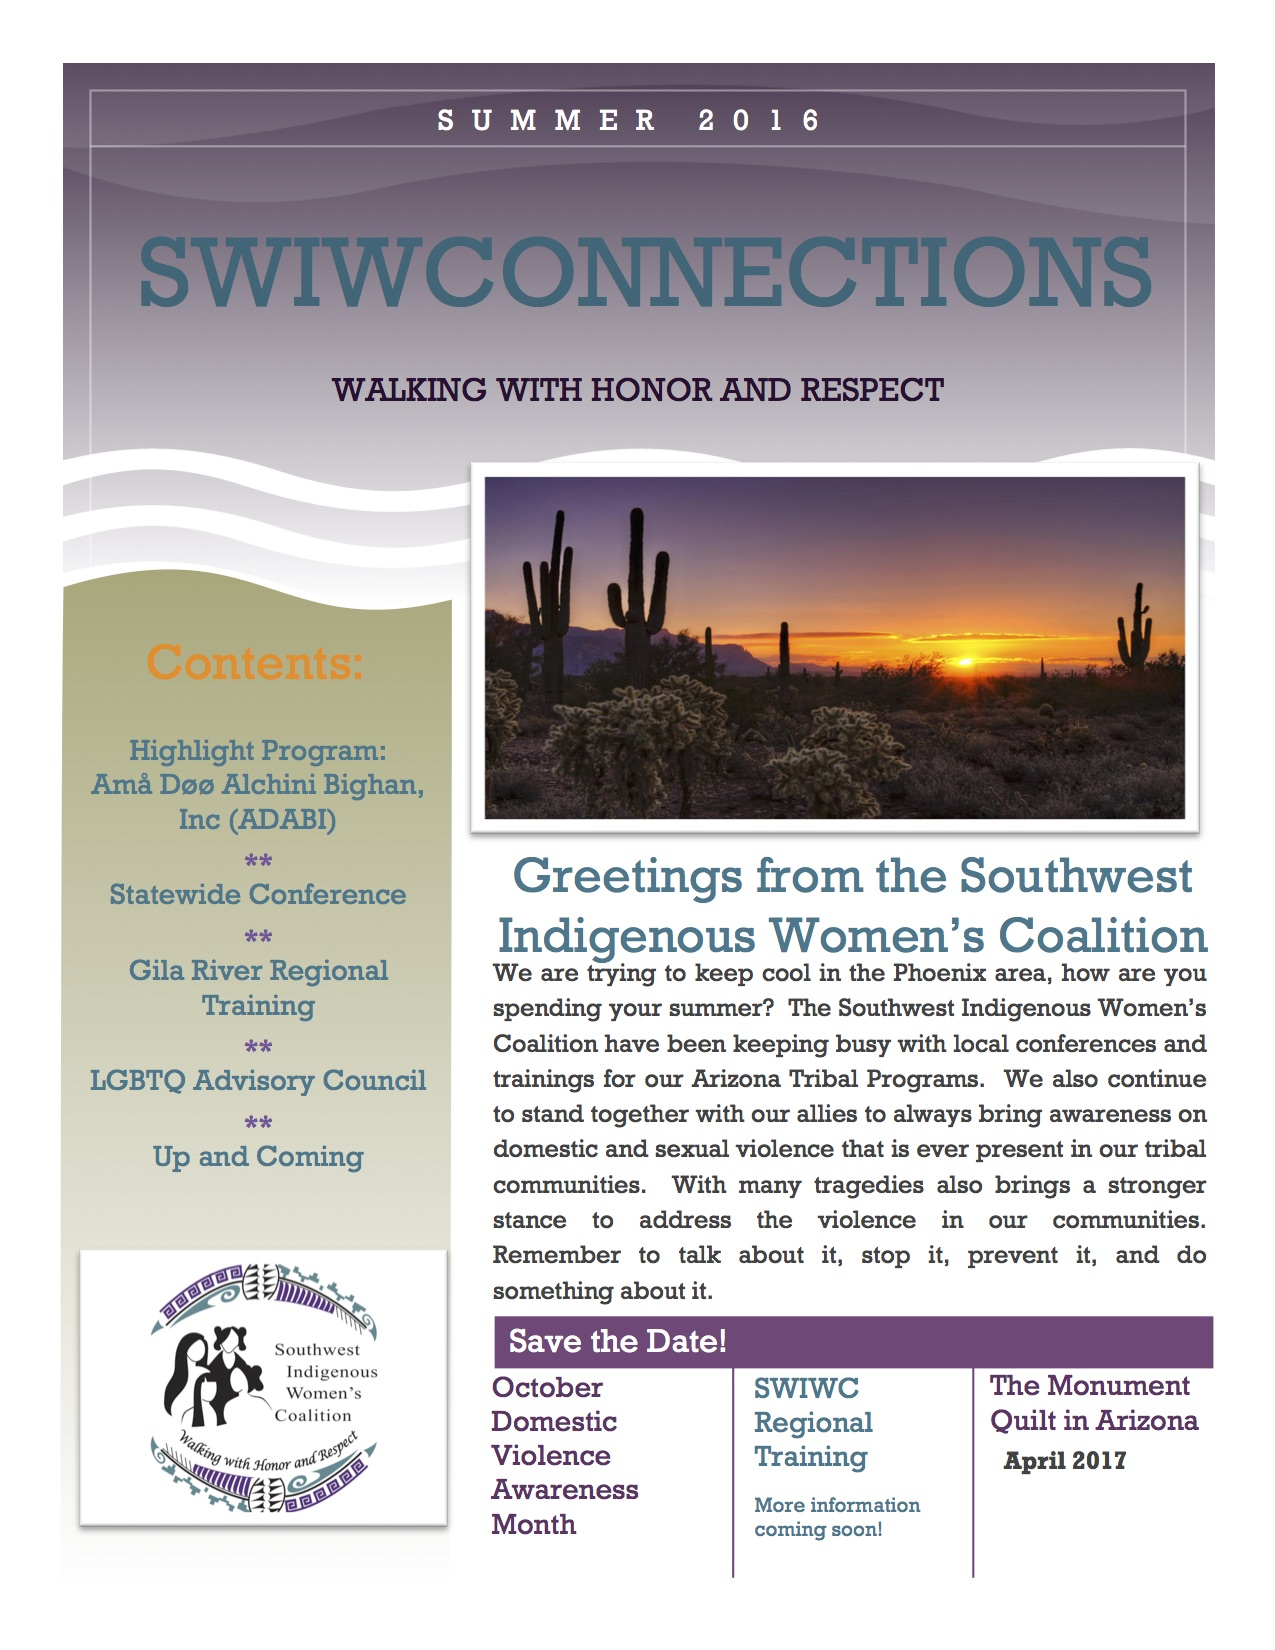 SWIWCONNECTIONS SUMMER16 copy